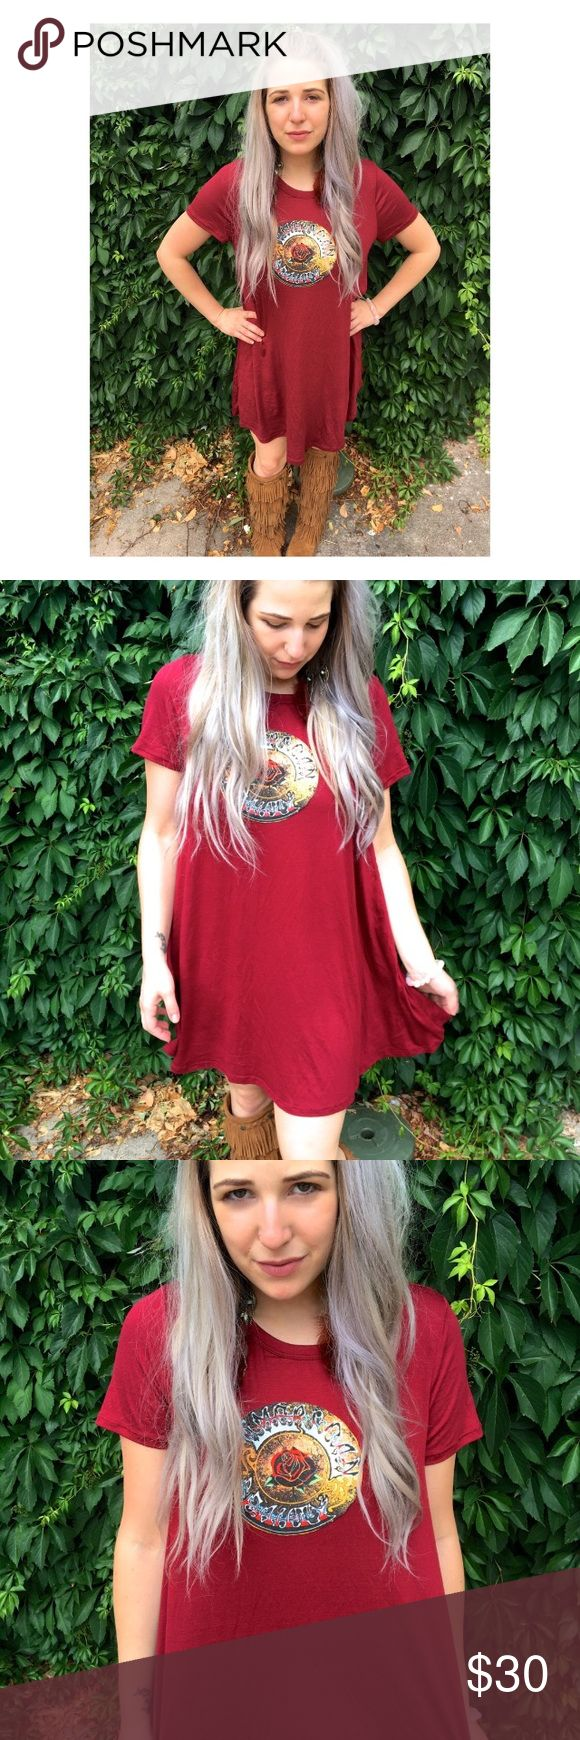 Phunky Boho: upcycled Grateful Dead t shirt dress Super soft and lightweight maroon t-shirt dress. Features Grateful Dead American Beauty appliqué on front. Super cute belted or worn with leggings! Sizing: Recommended for sizes XS - M best Model is a size small for fit reference. Handmade with love <3 Not intended to be perfect or look machine made. Only one available! Stone Cold Fox Dresses Midi